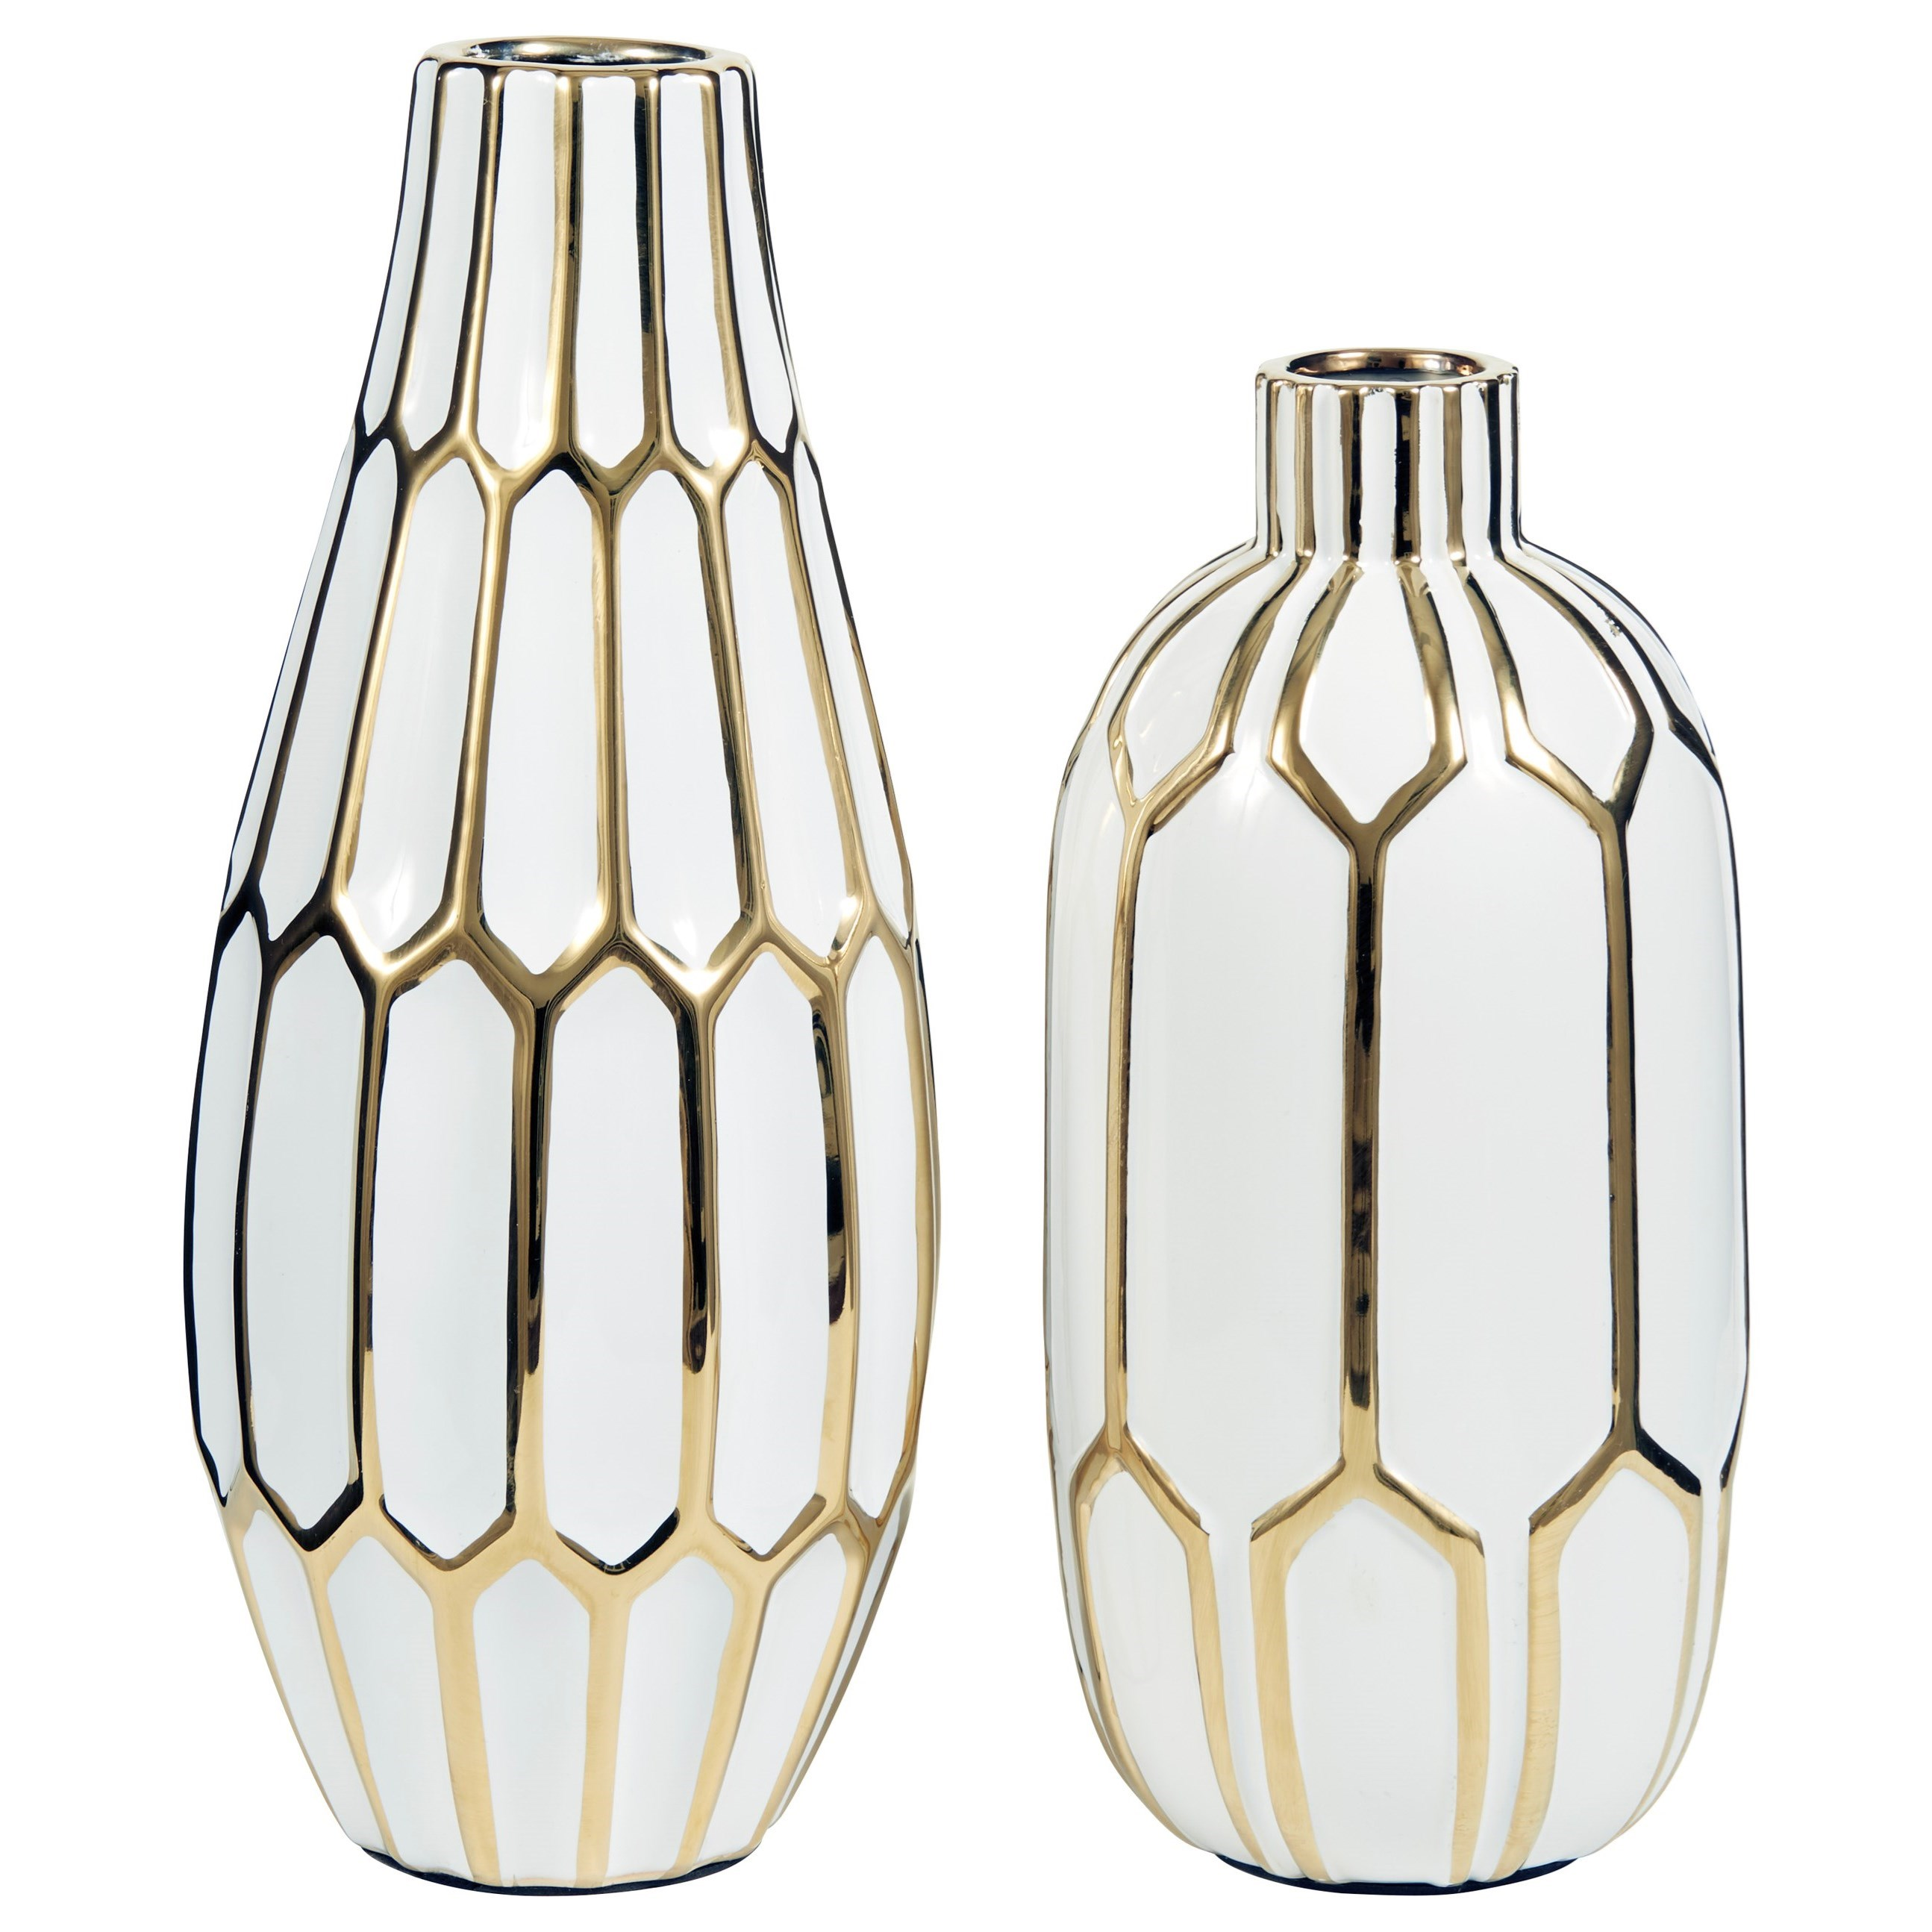 Accents Mohsen Gold Finish/White Vase Set by Signature Design by Ashley at Sparks HomeStore